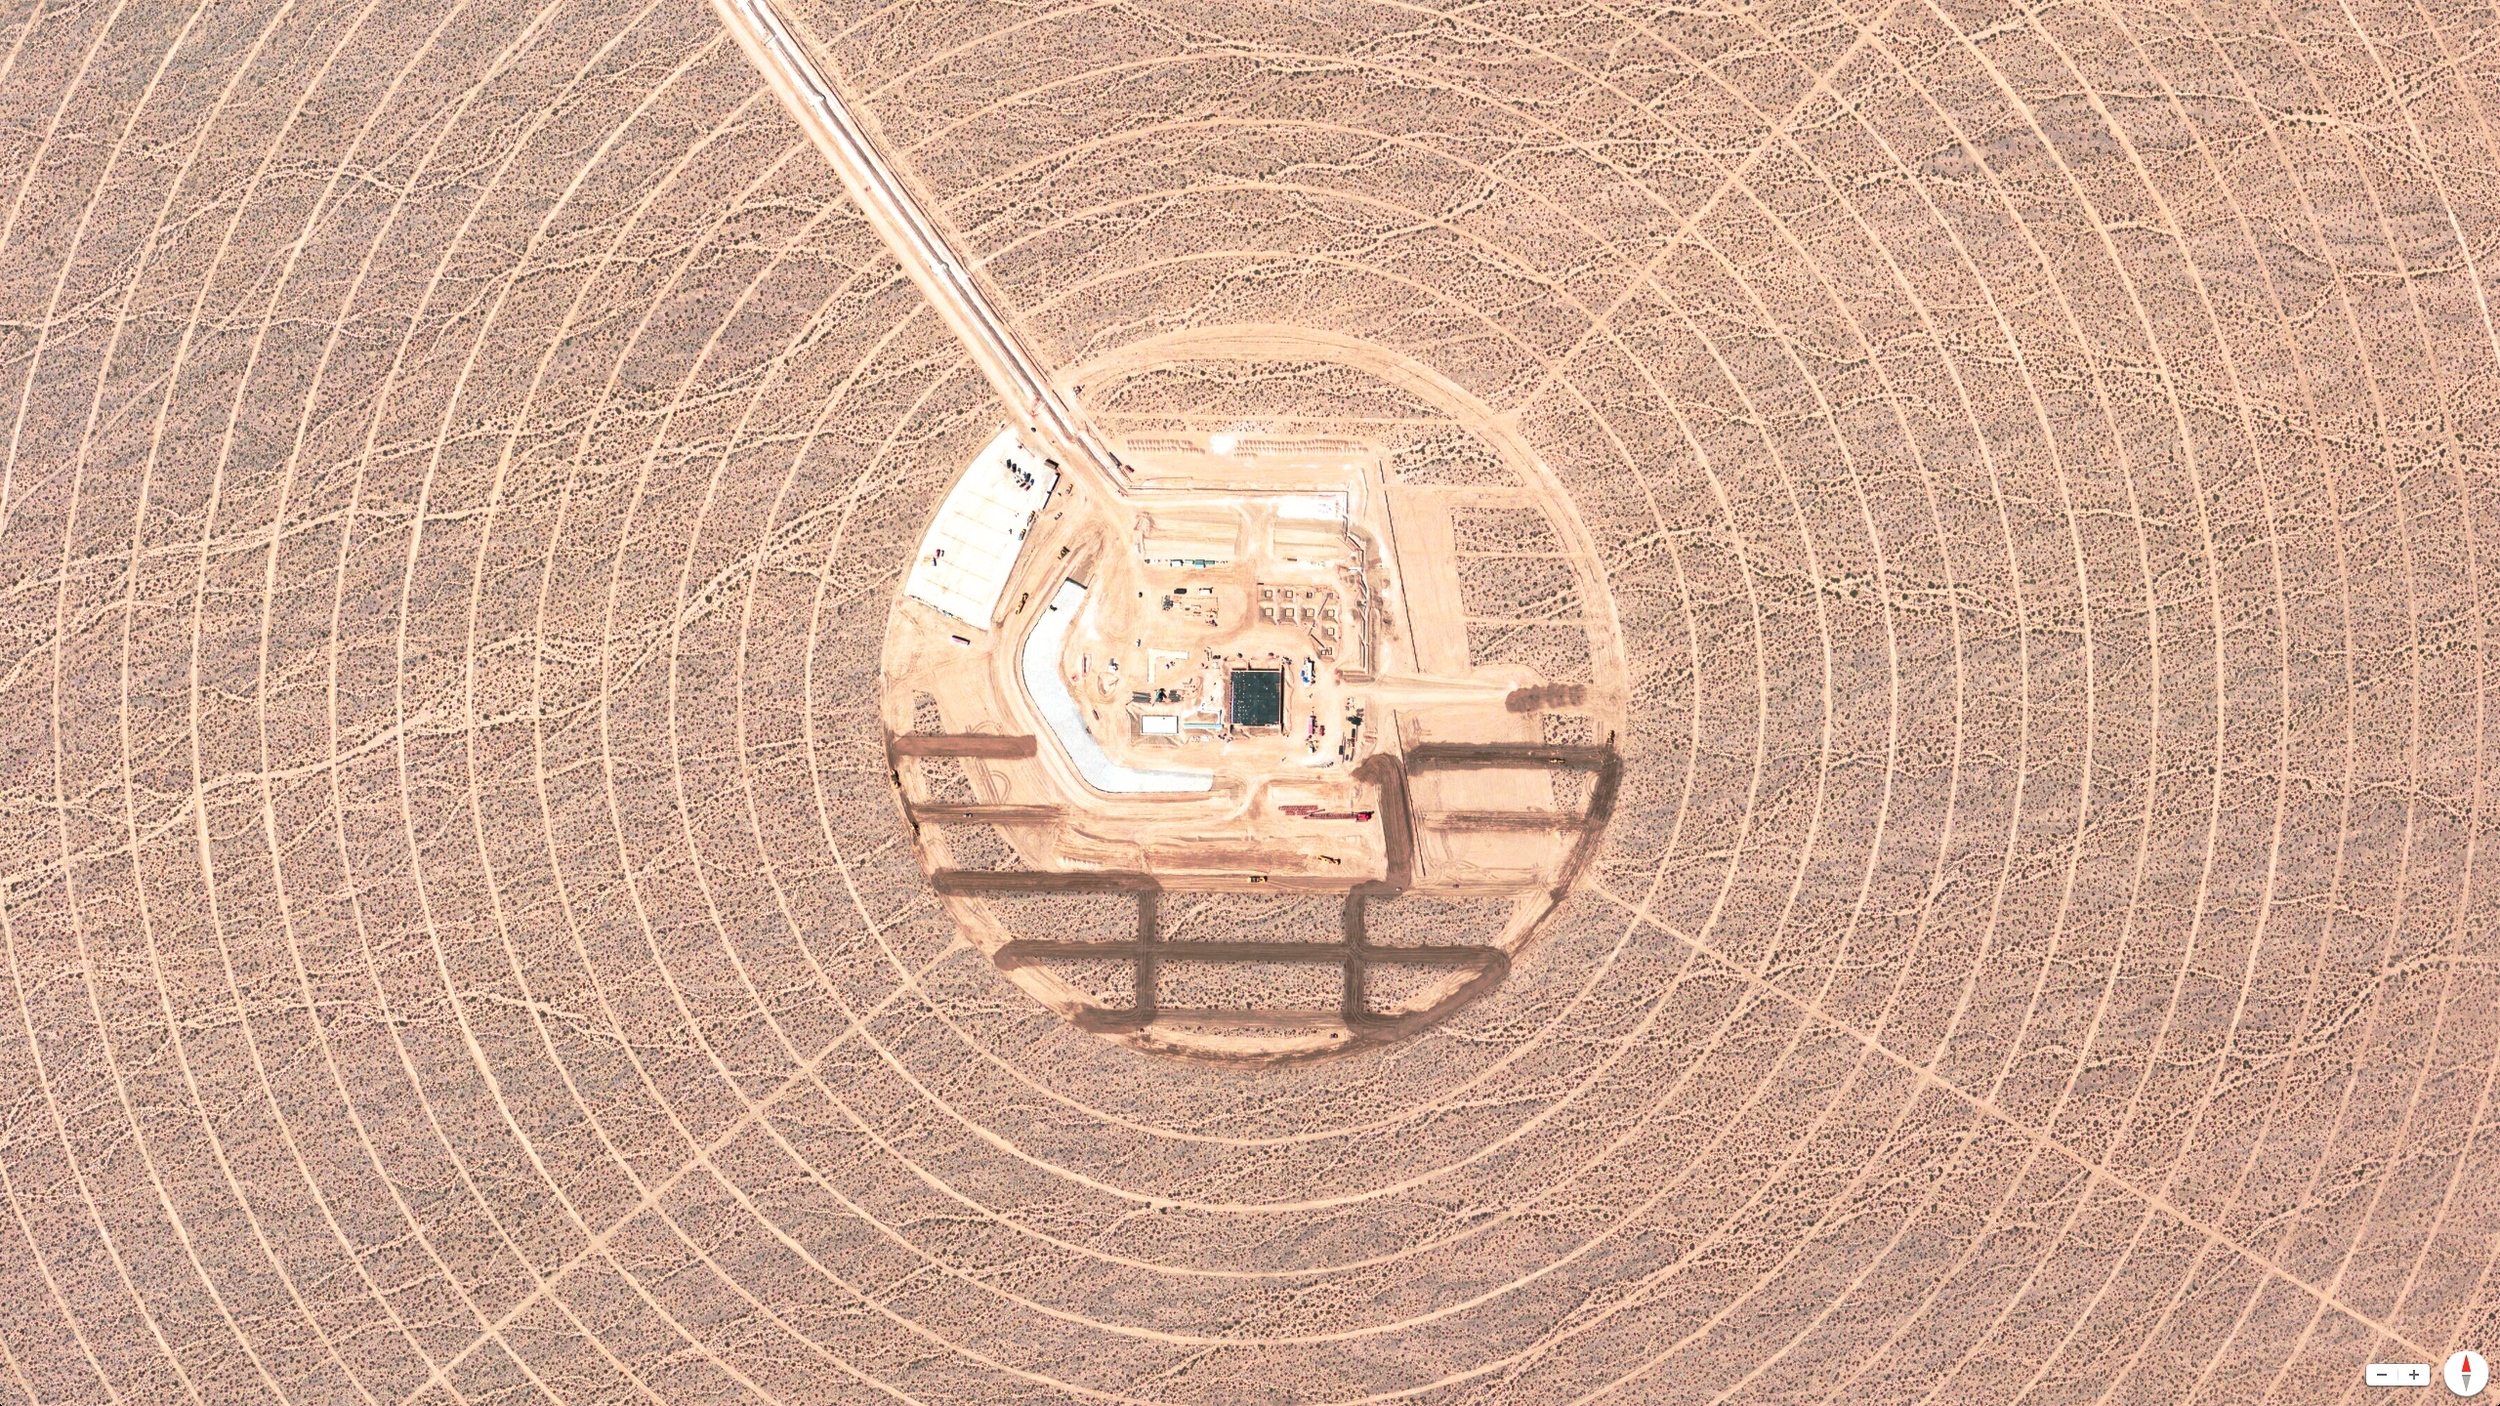 3/27/2014    Construction of Ivanpah Solar Power Facility   Mojave Desert, California, USA   35.57°N 115.47°W